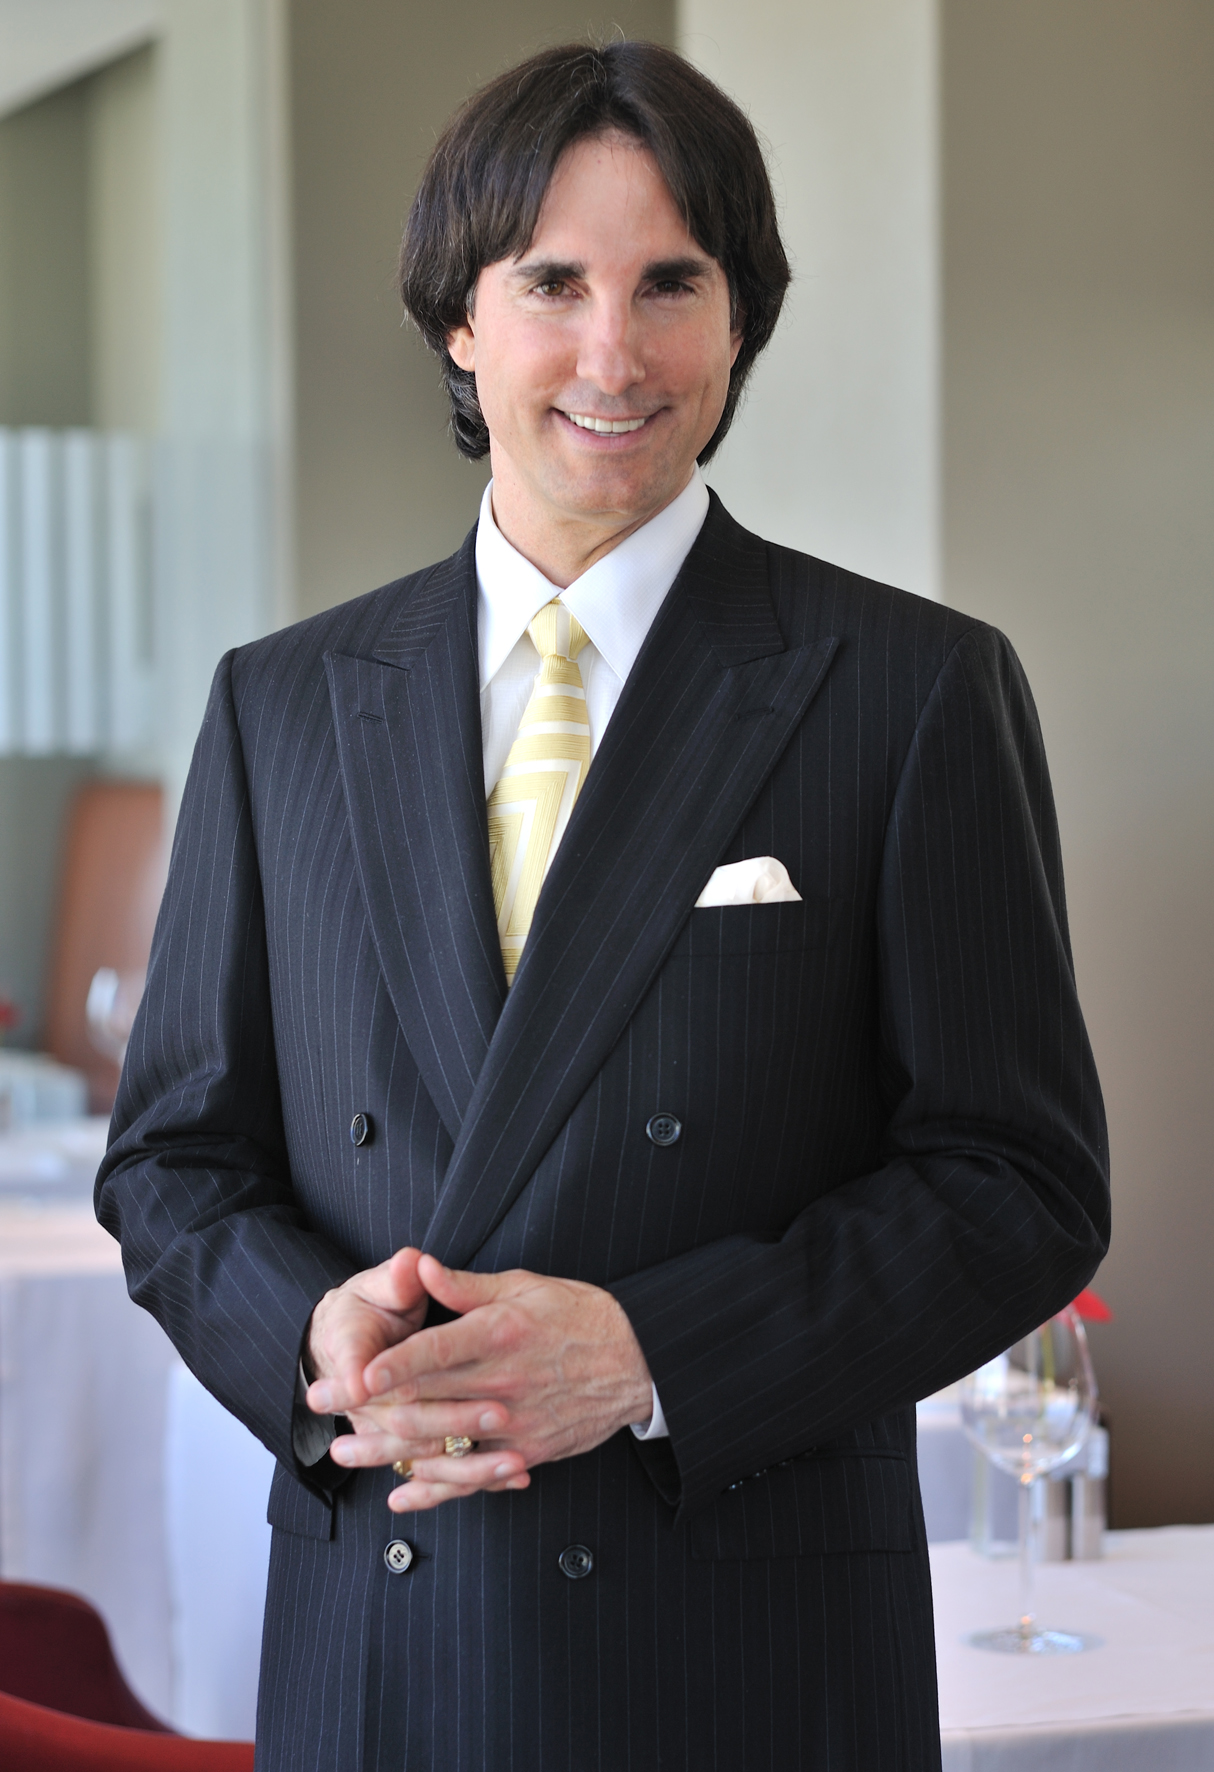 Dr John Demartini - Profile Picture.jpg